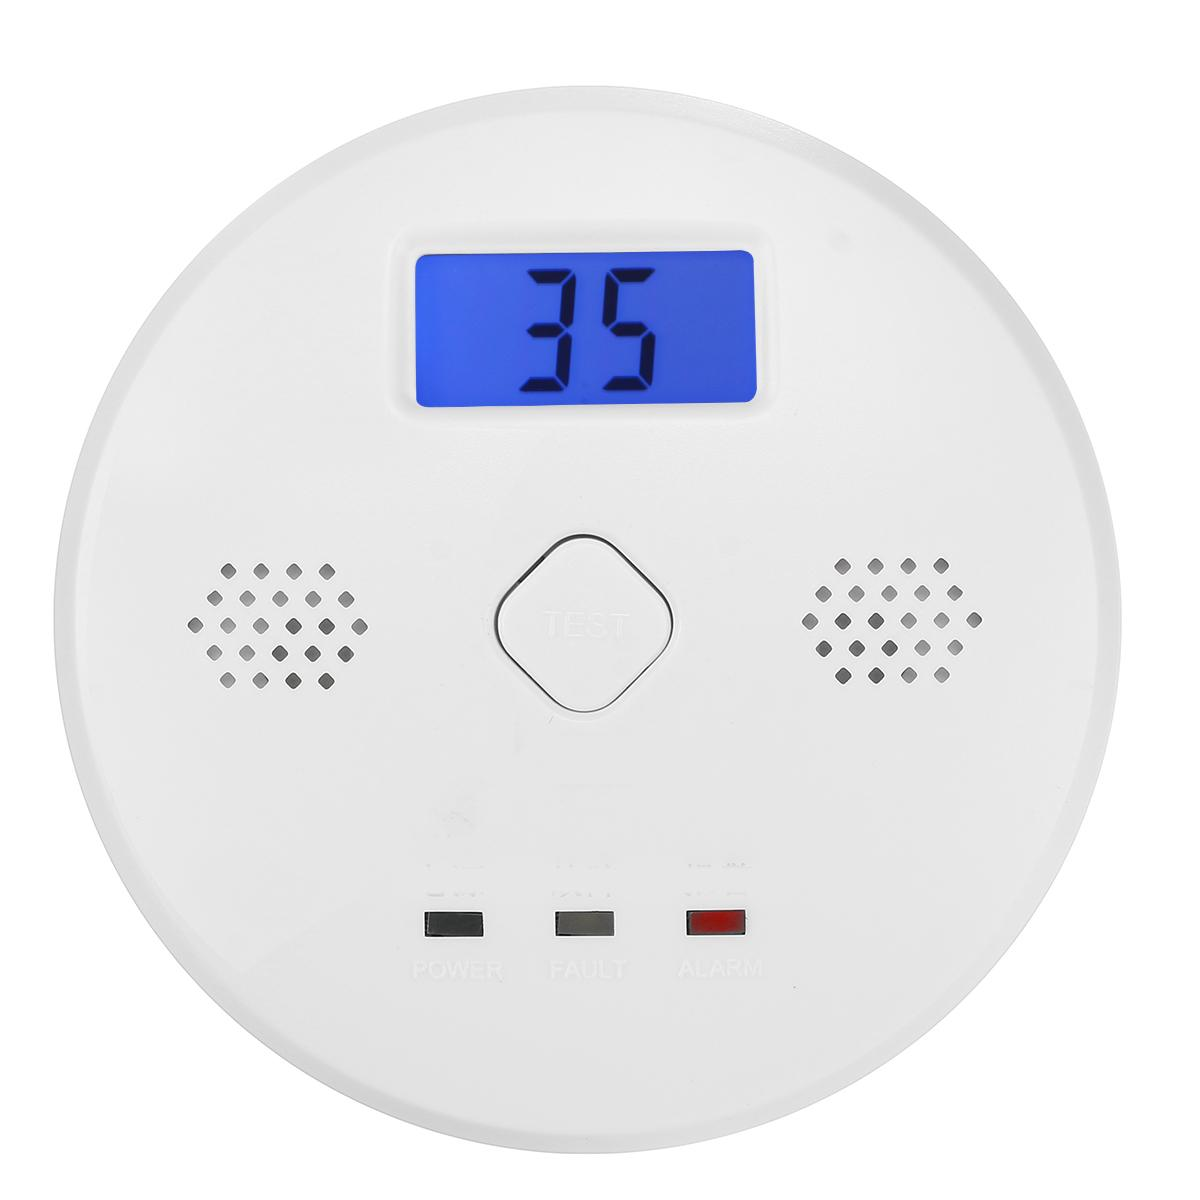 Carbon Gas Monoxide Alarm CO Detector Household LCD Display High Sensitive Smoke Fire ASK Alarm Sensor Detectors Home Security